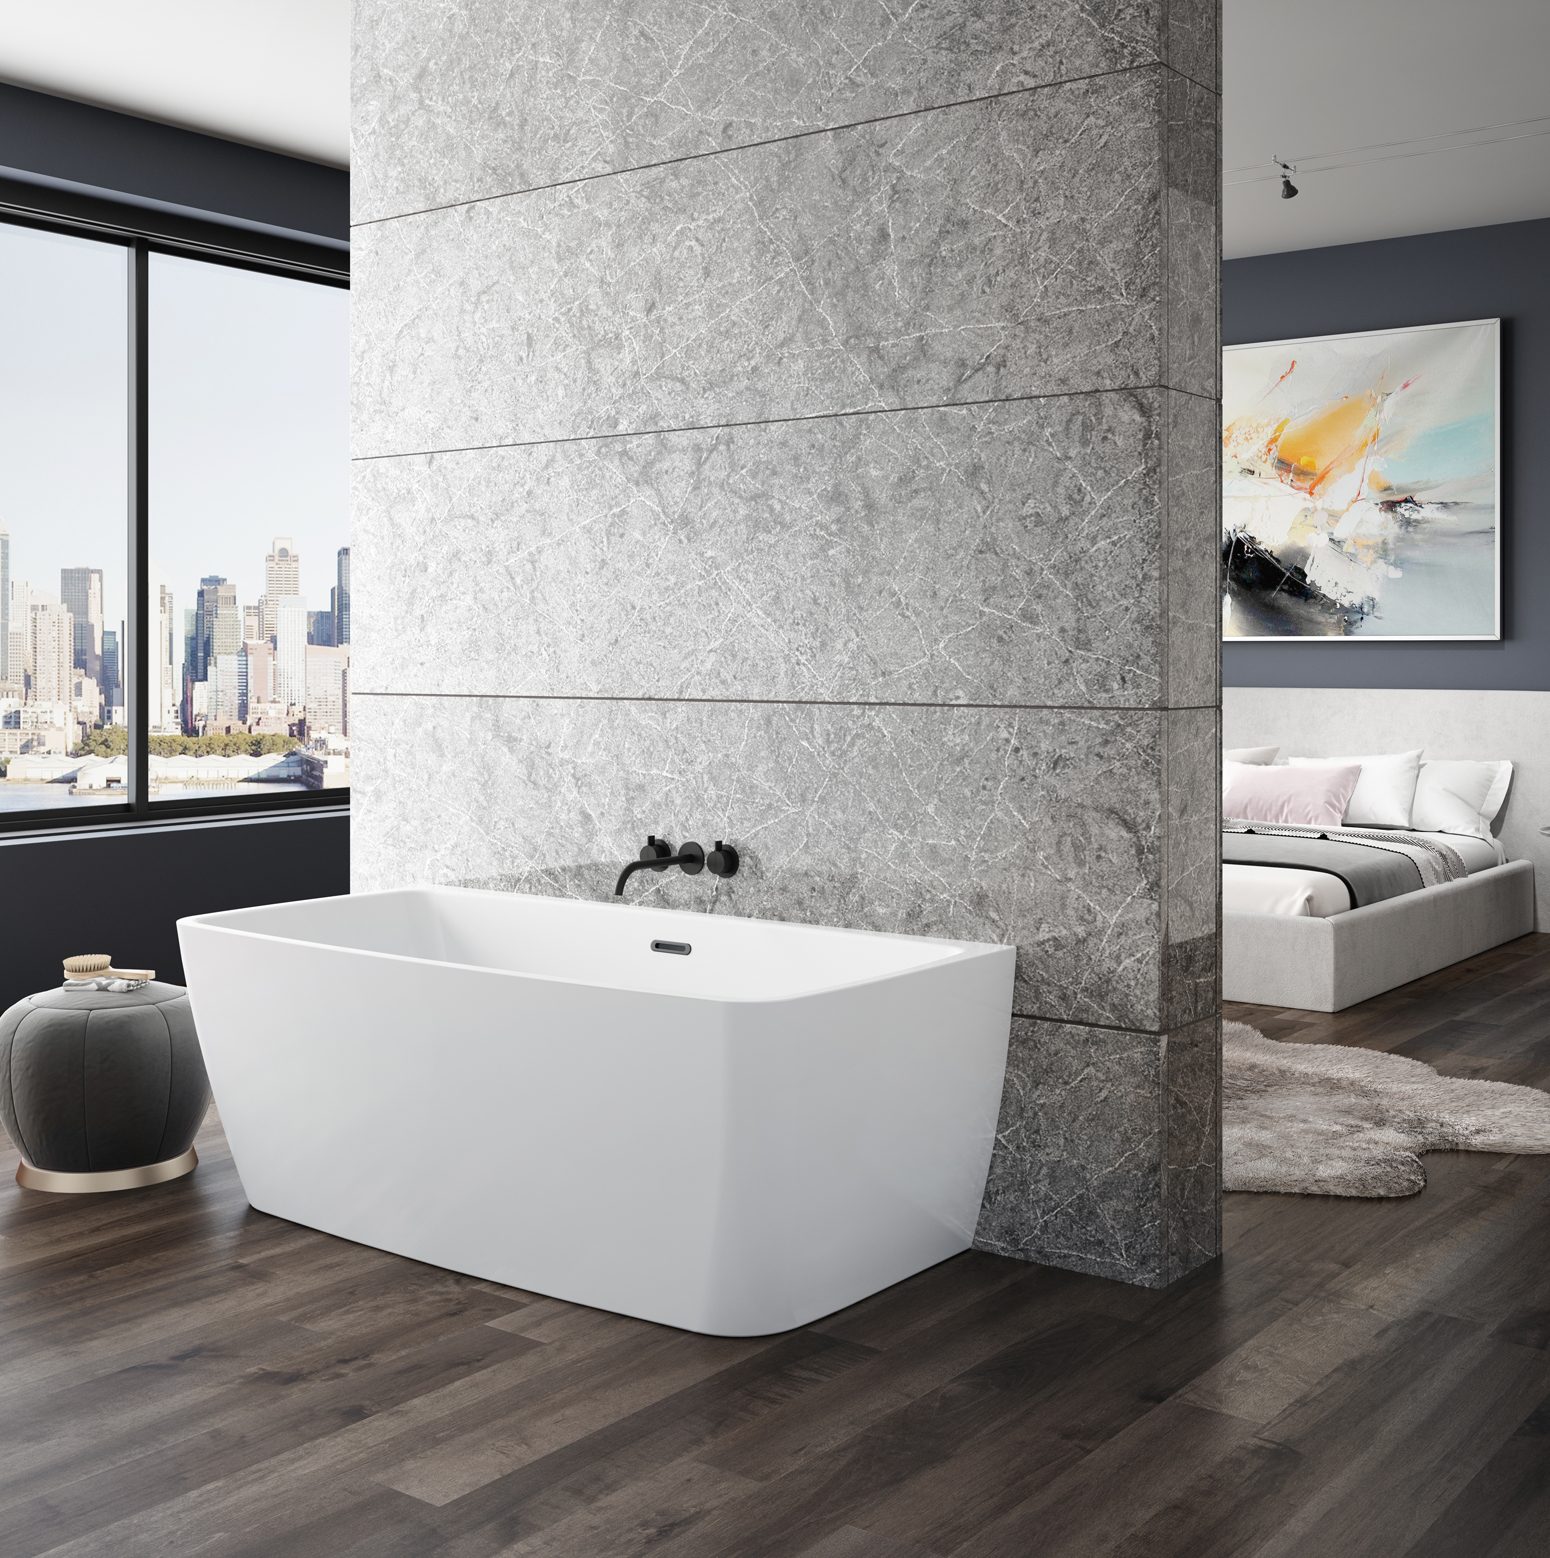 Bainultra Vibe Back To Wall 5828 air jet bathtub for your modern bathroom